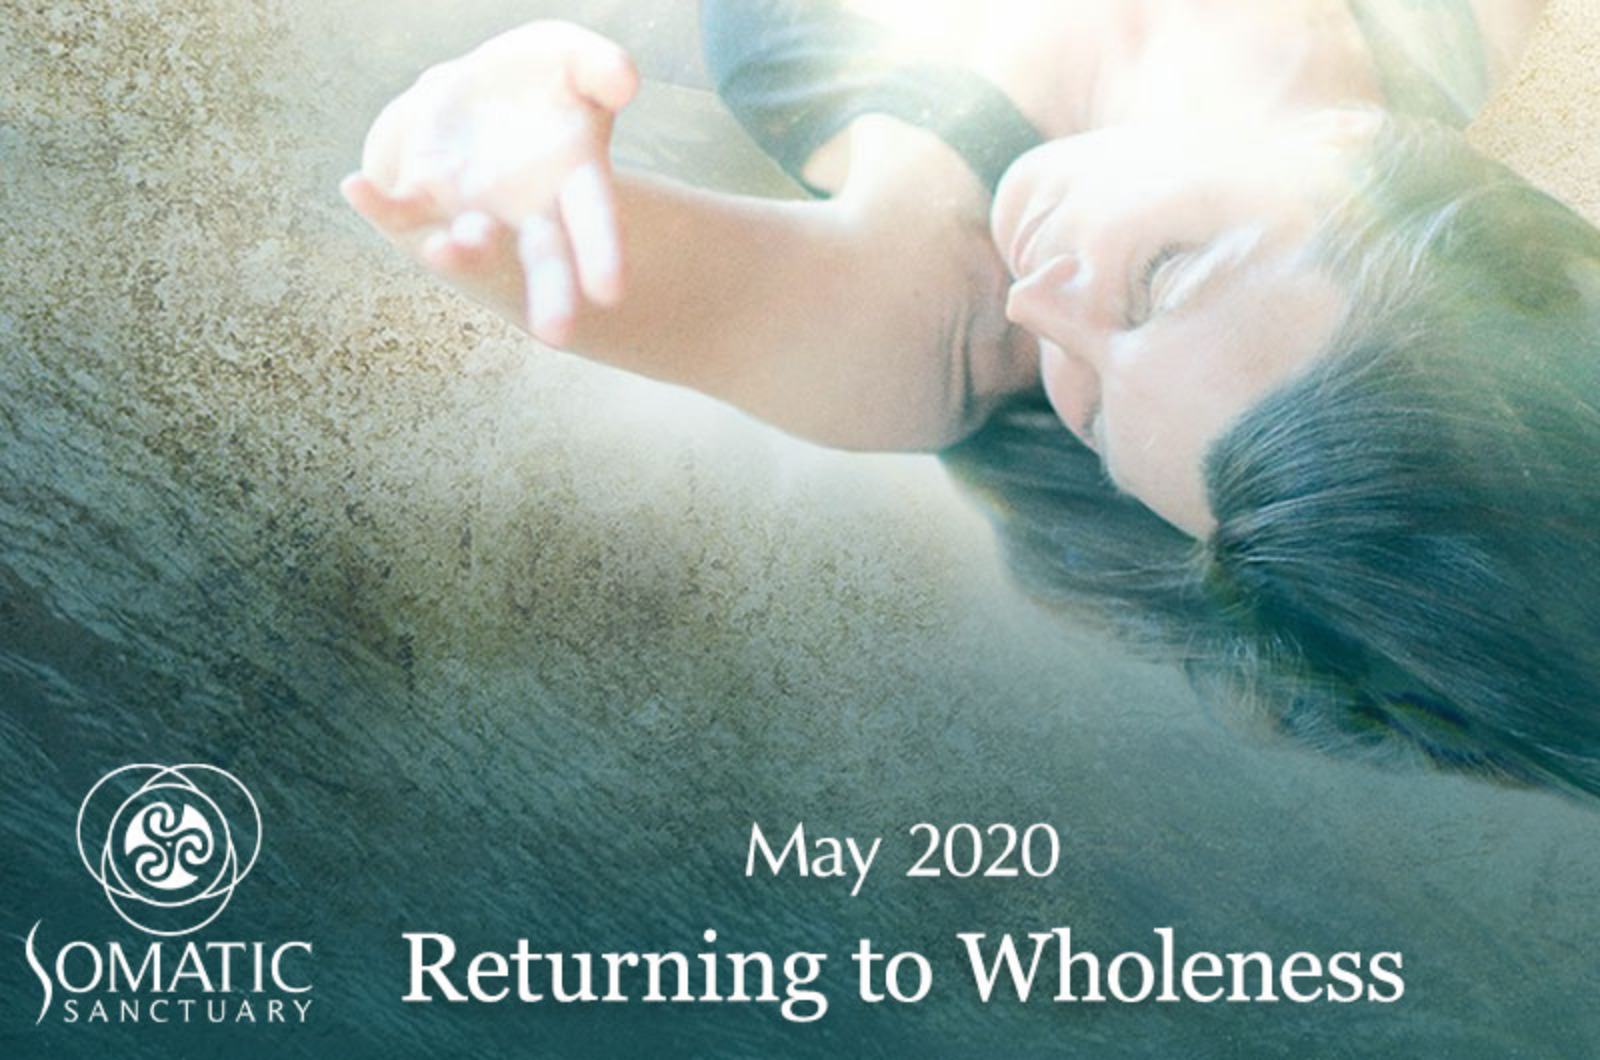 Returning to Wholeness: May 2020